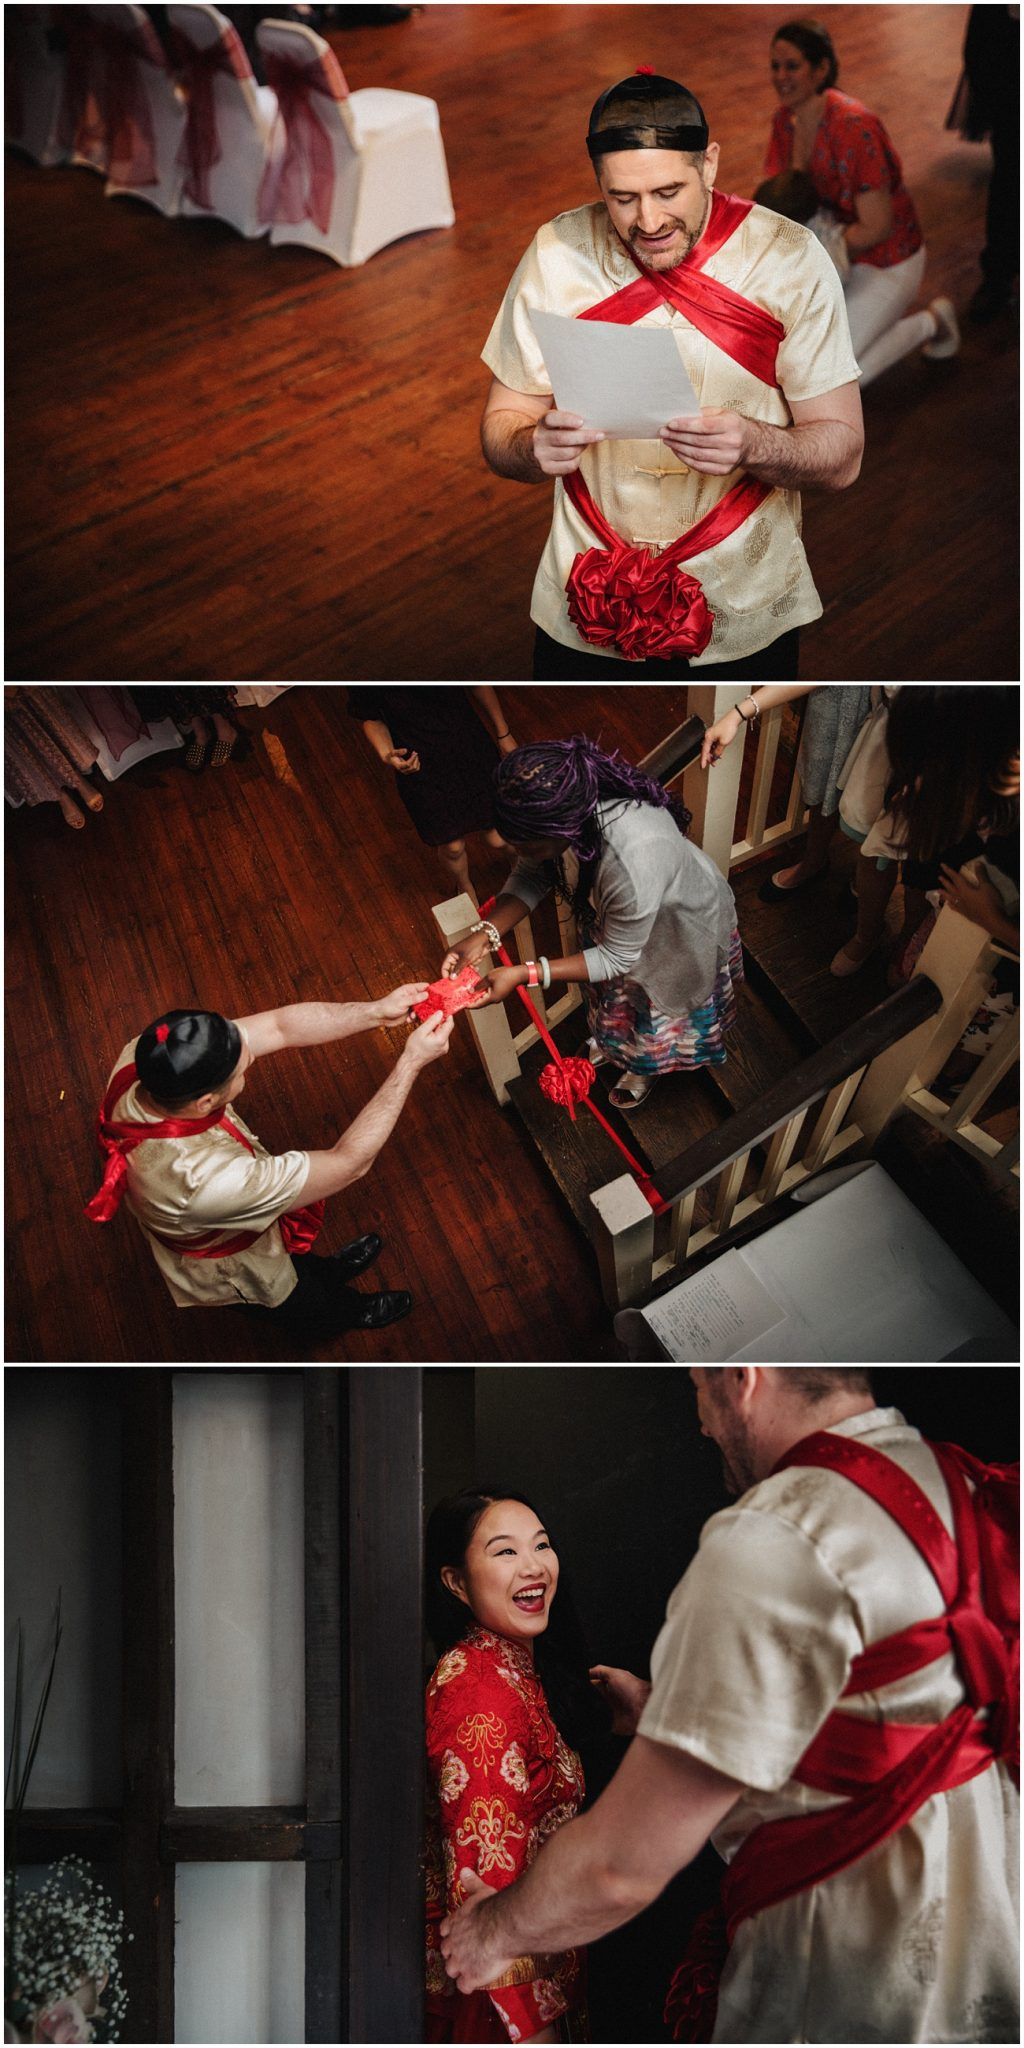 The groom waits at the bottom of the stairs and then sees his bride for the first time